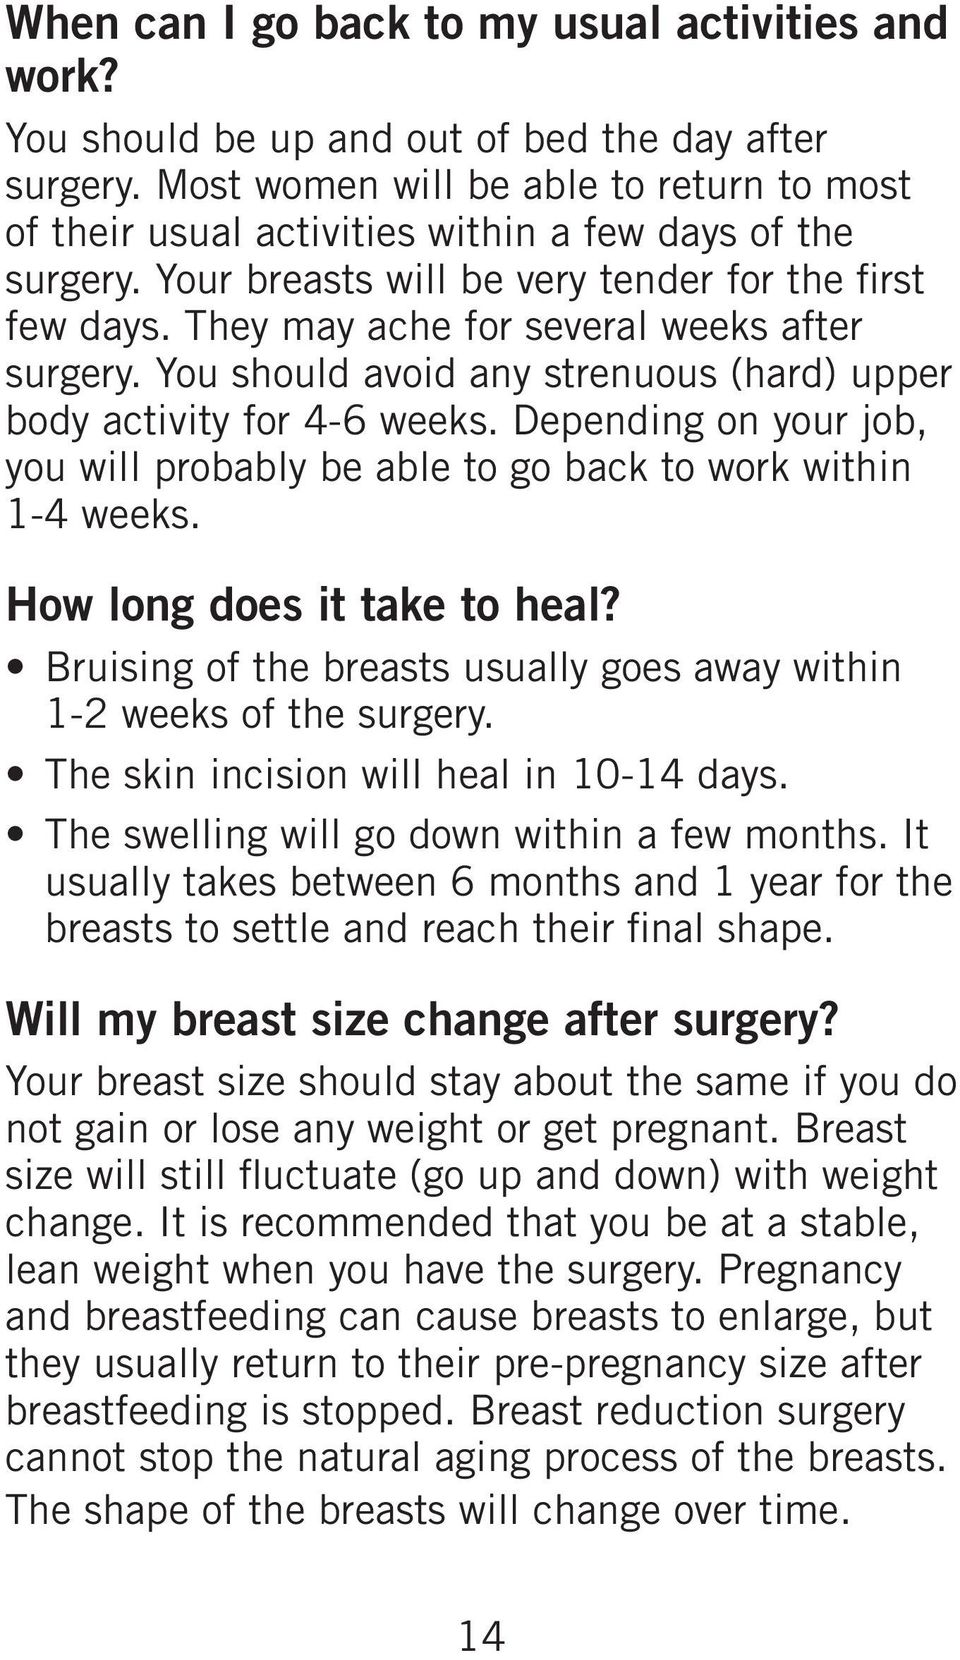 They may ache for several weeks after surgery. You should avoid any strenuous (hard) upper body activity for 4-6 weeks.